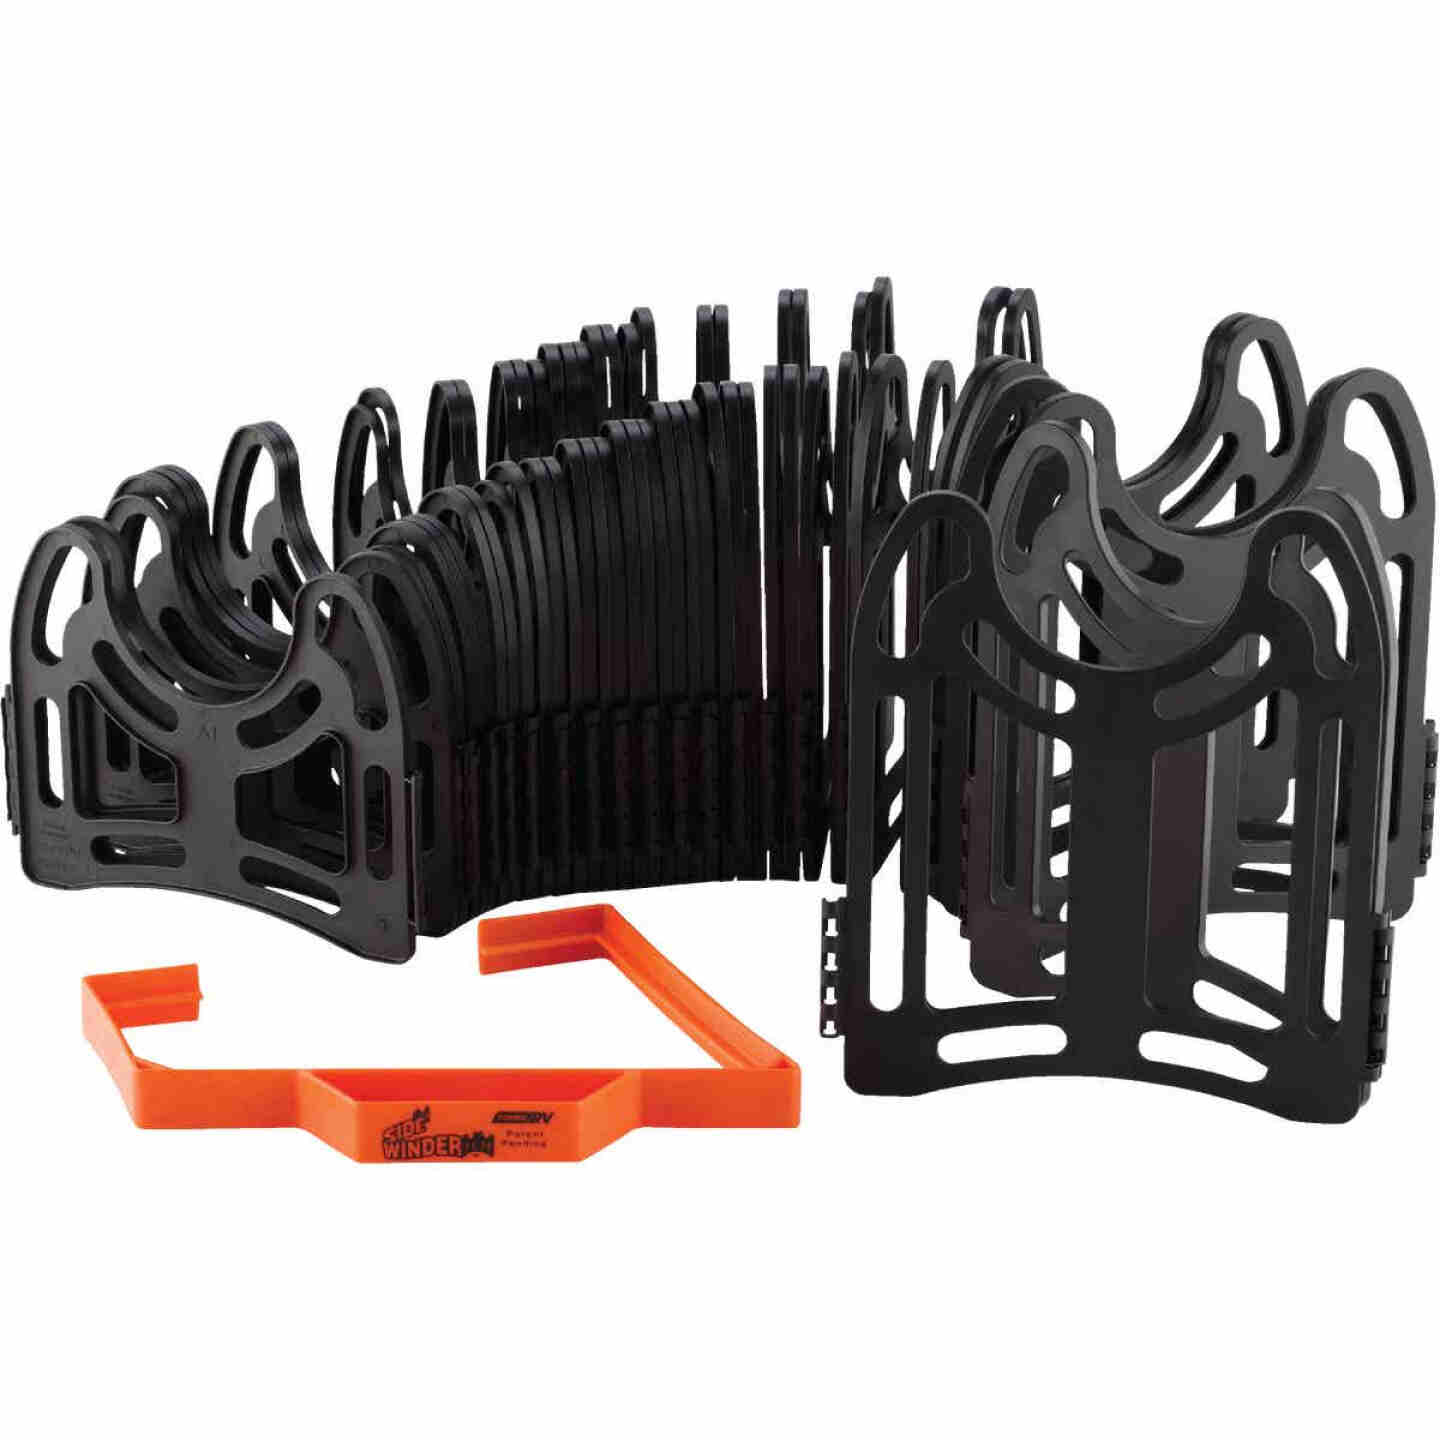 Camco 15 Ft. Sturdy, Lightweight Plastic Sidewinder RV Sewer Hose Support Image 4